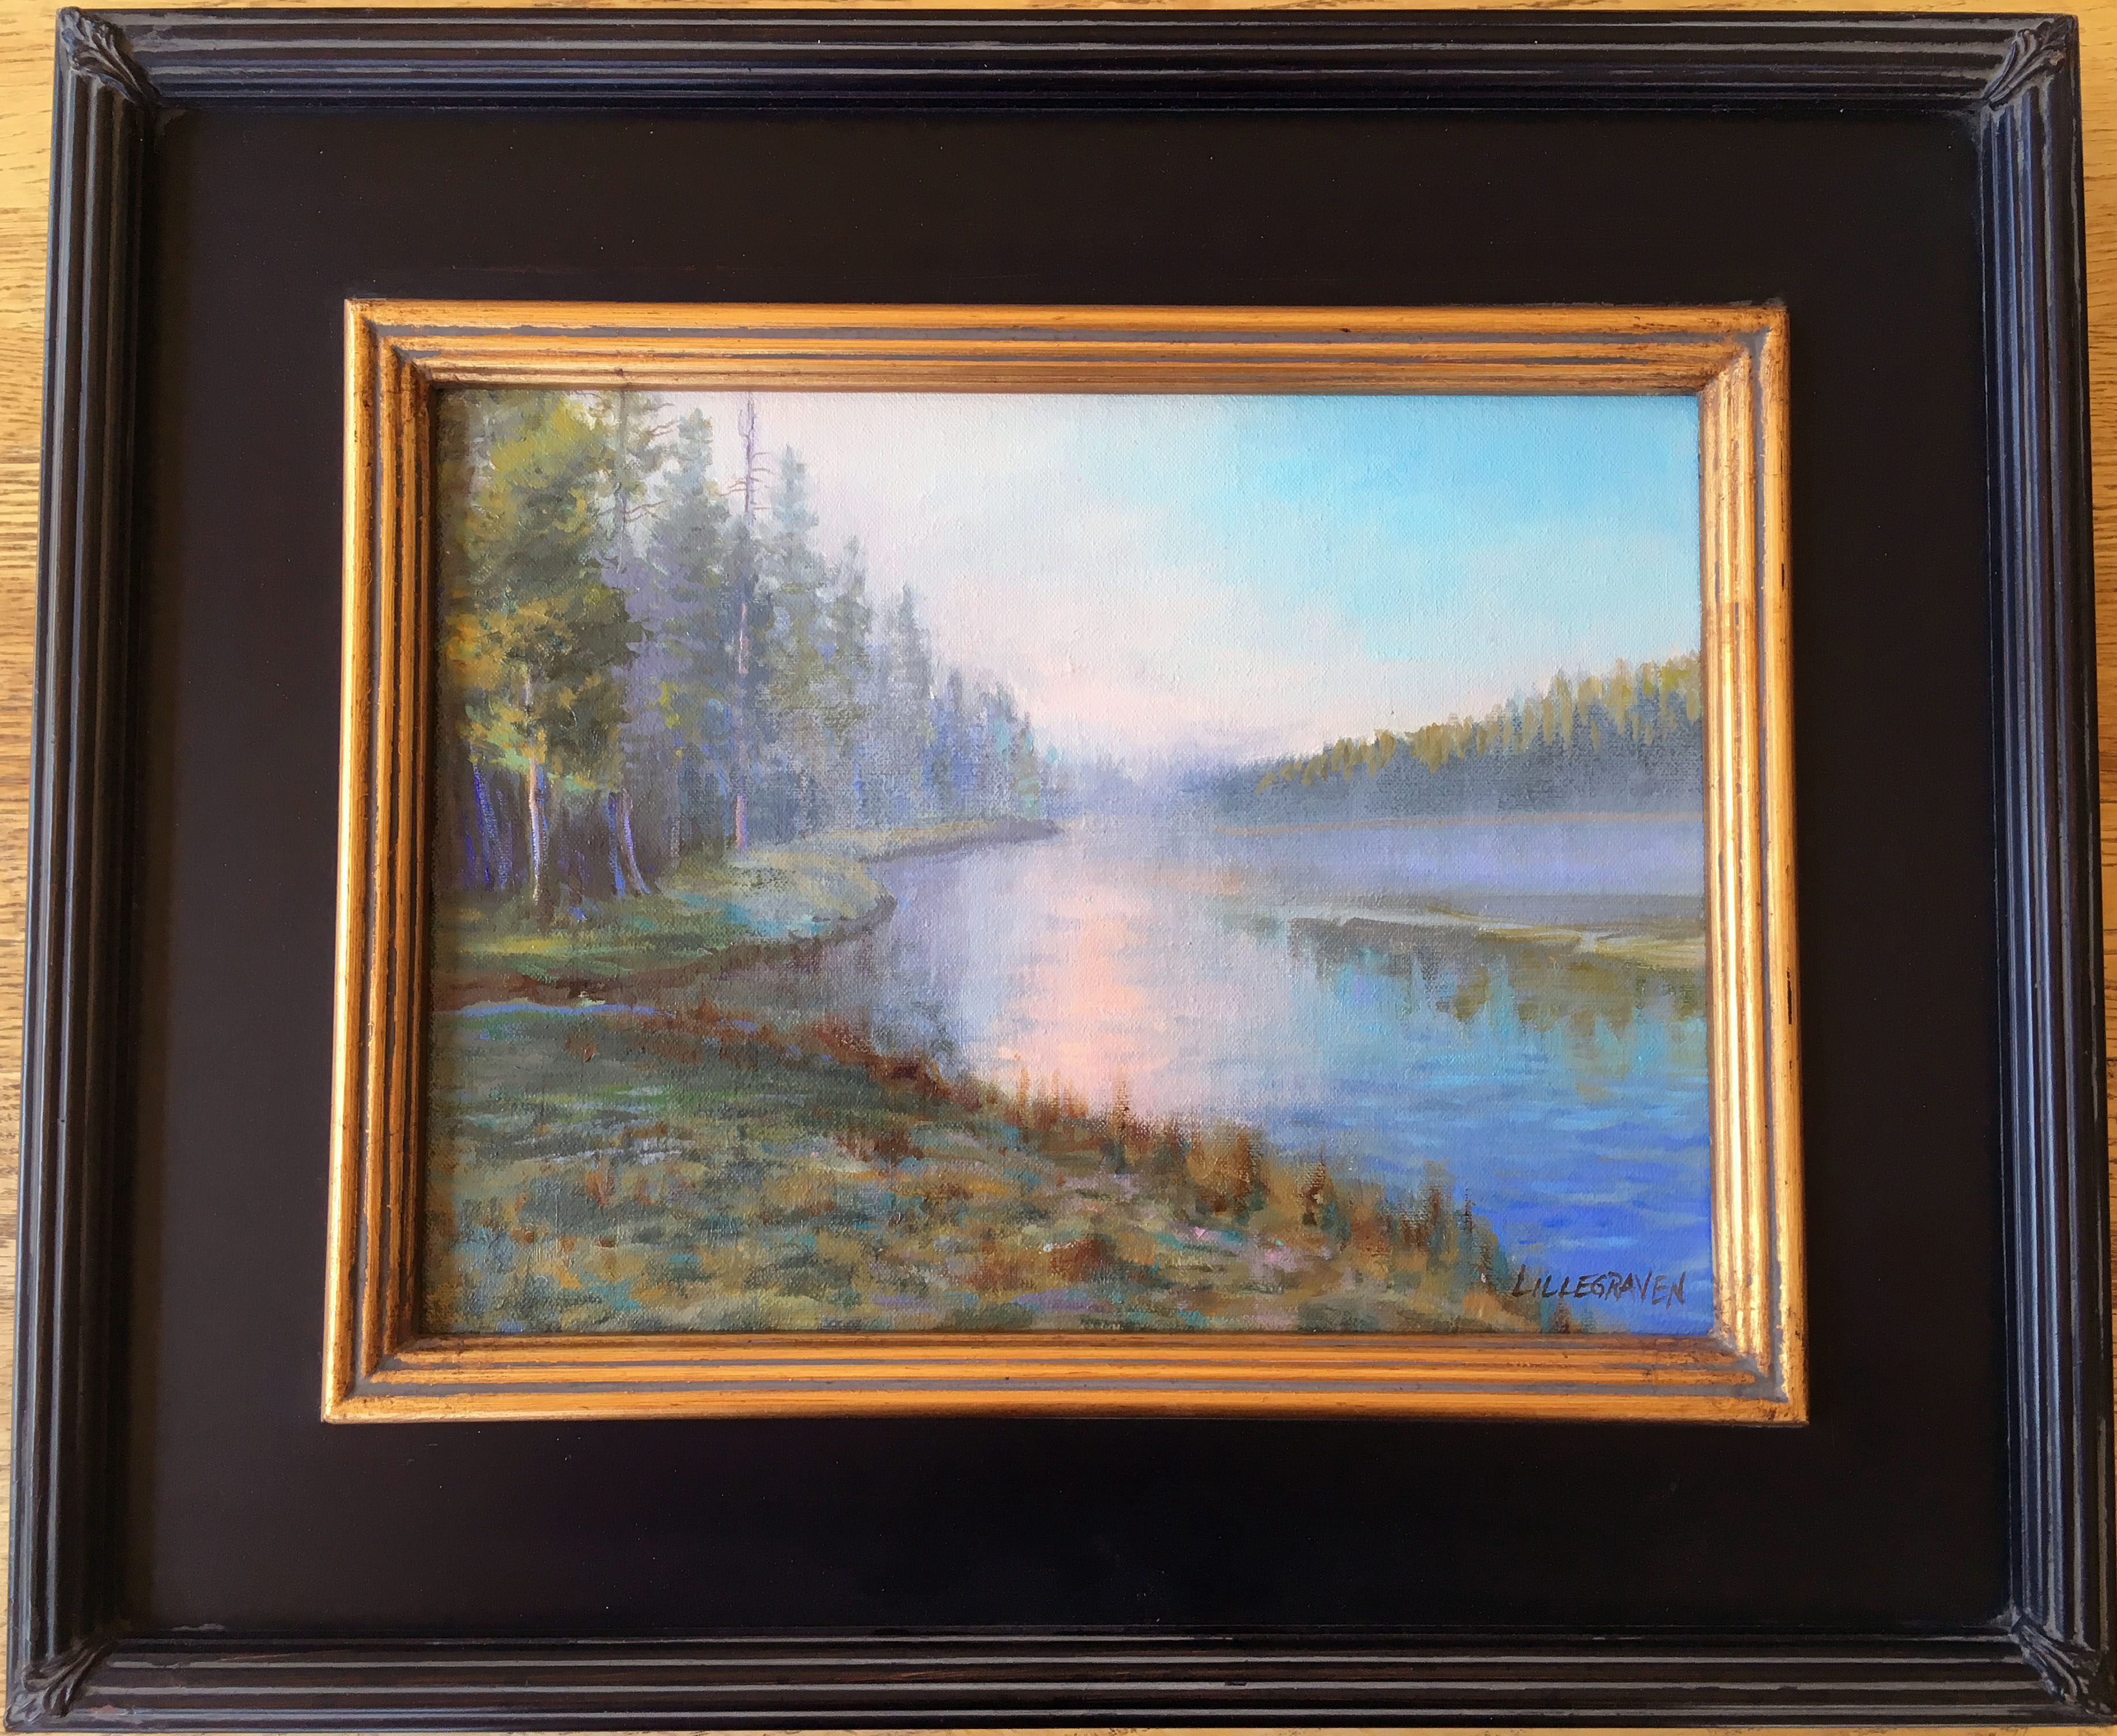 Study for Firehole River Dawn by Linda Lillegraven, Retail $900